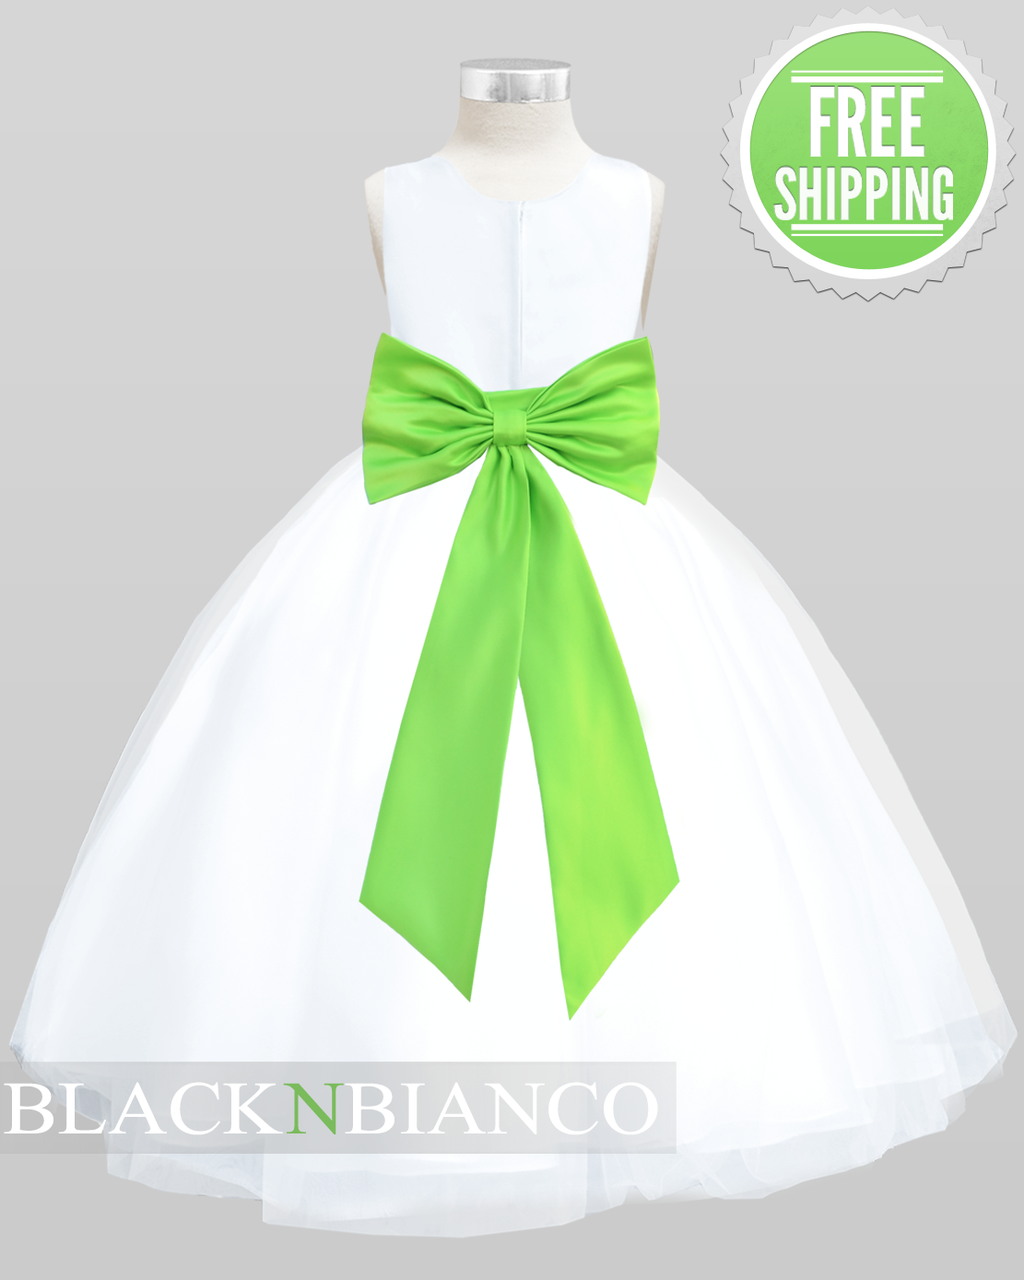 9932c7740 Black N Bianco - White Sleeveless Satin Flower Girl Dress w/ Vibrant Lime  Green Bow